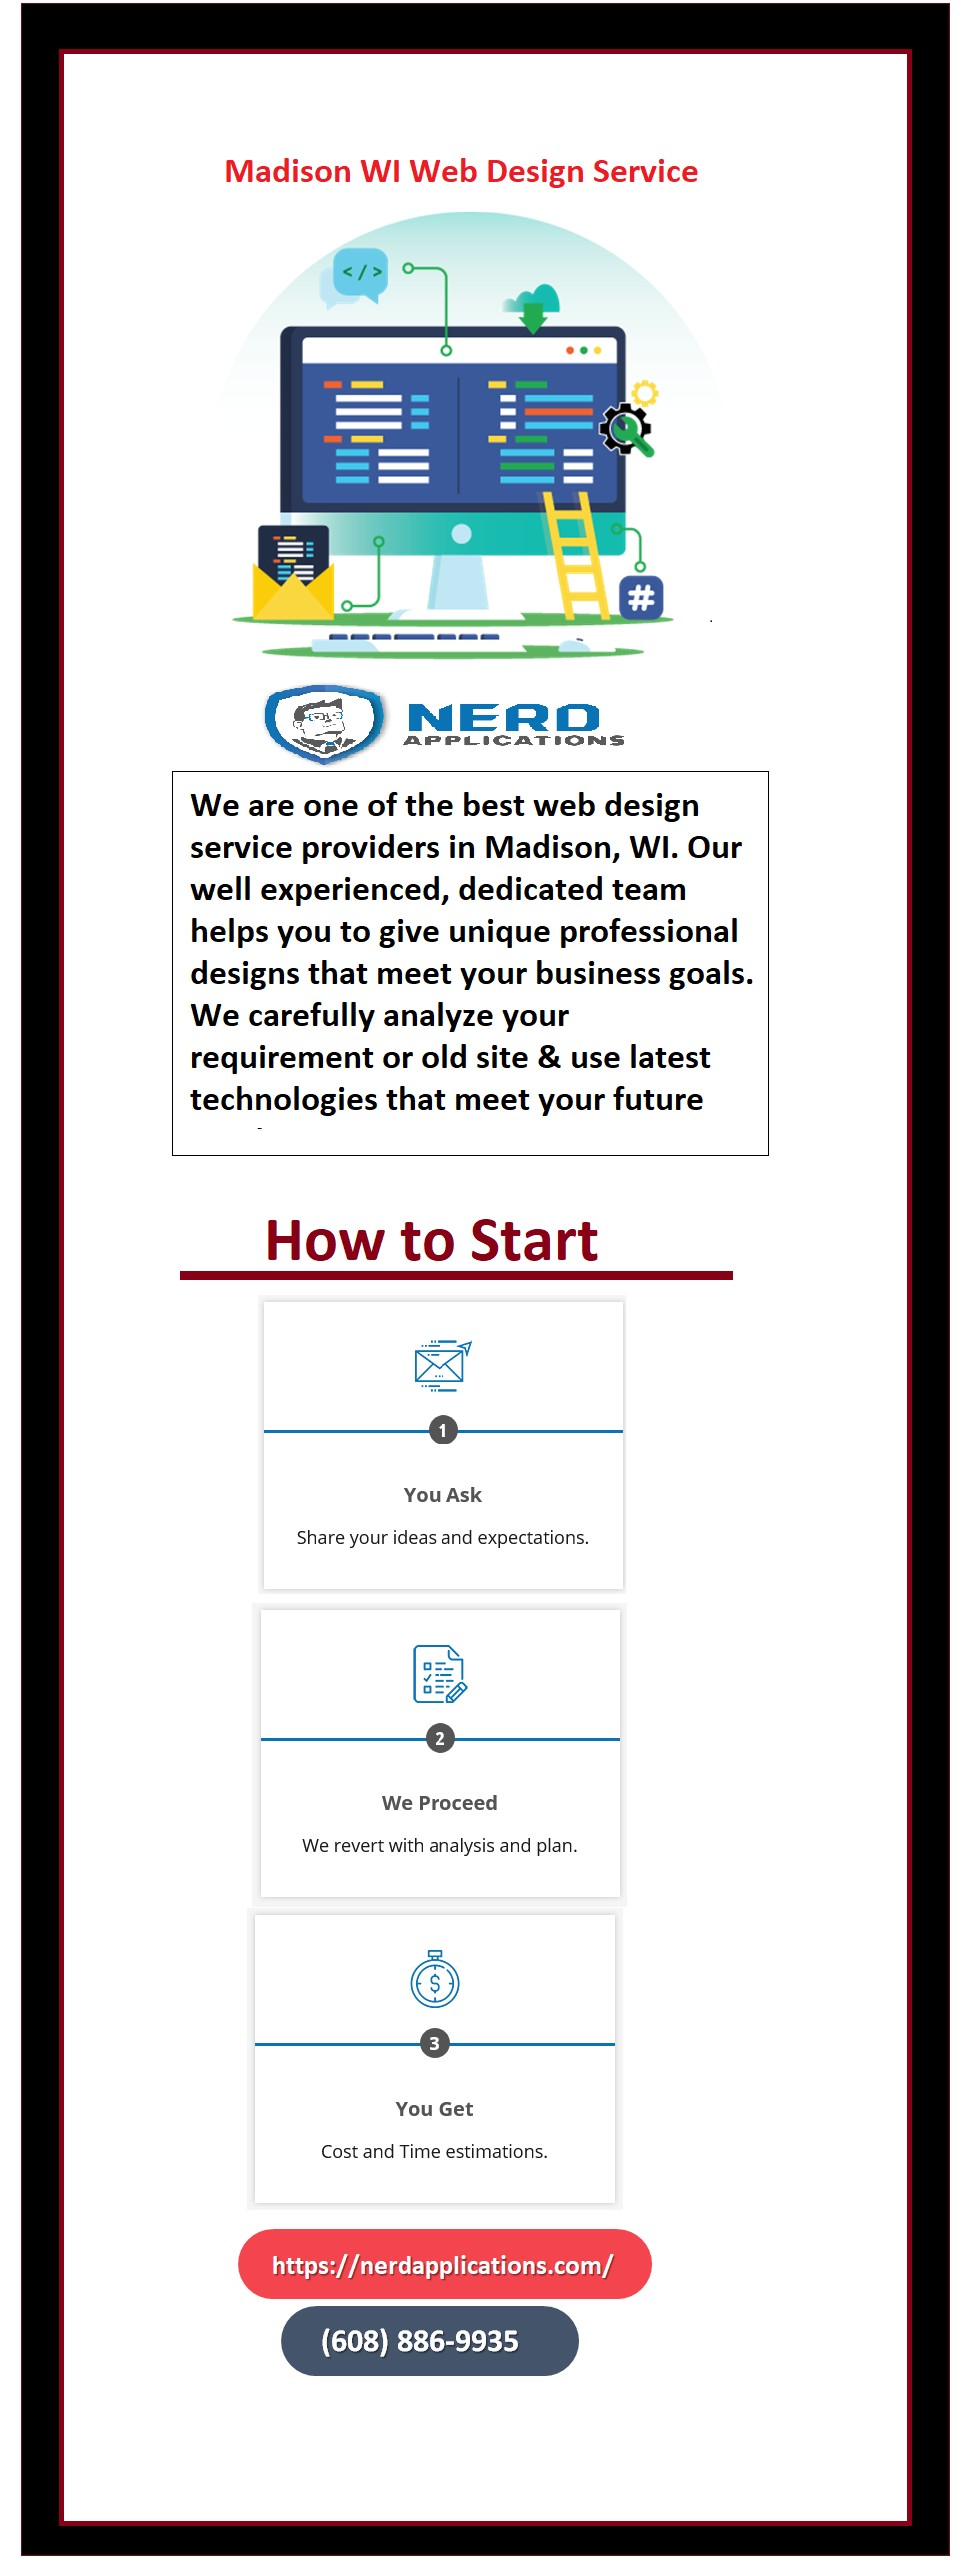 Web Design Services in Madison, Wisconsin